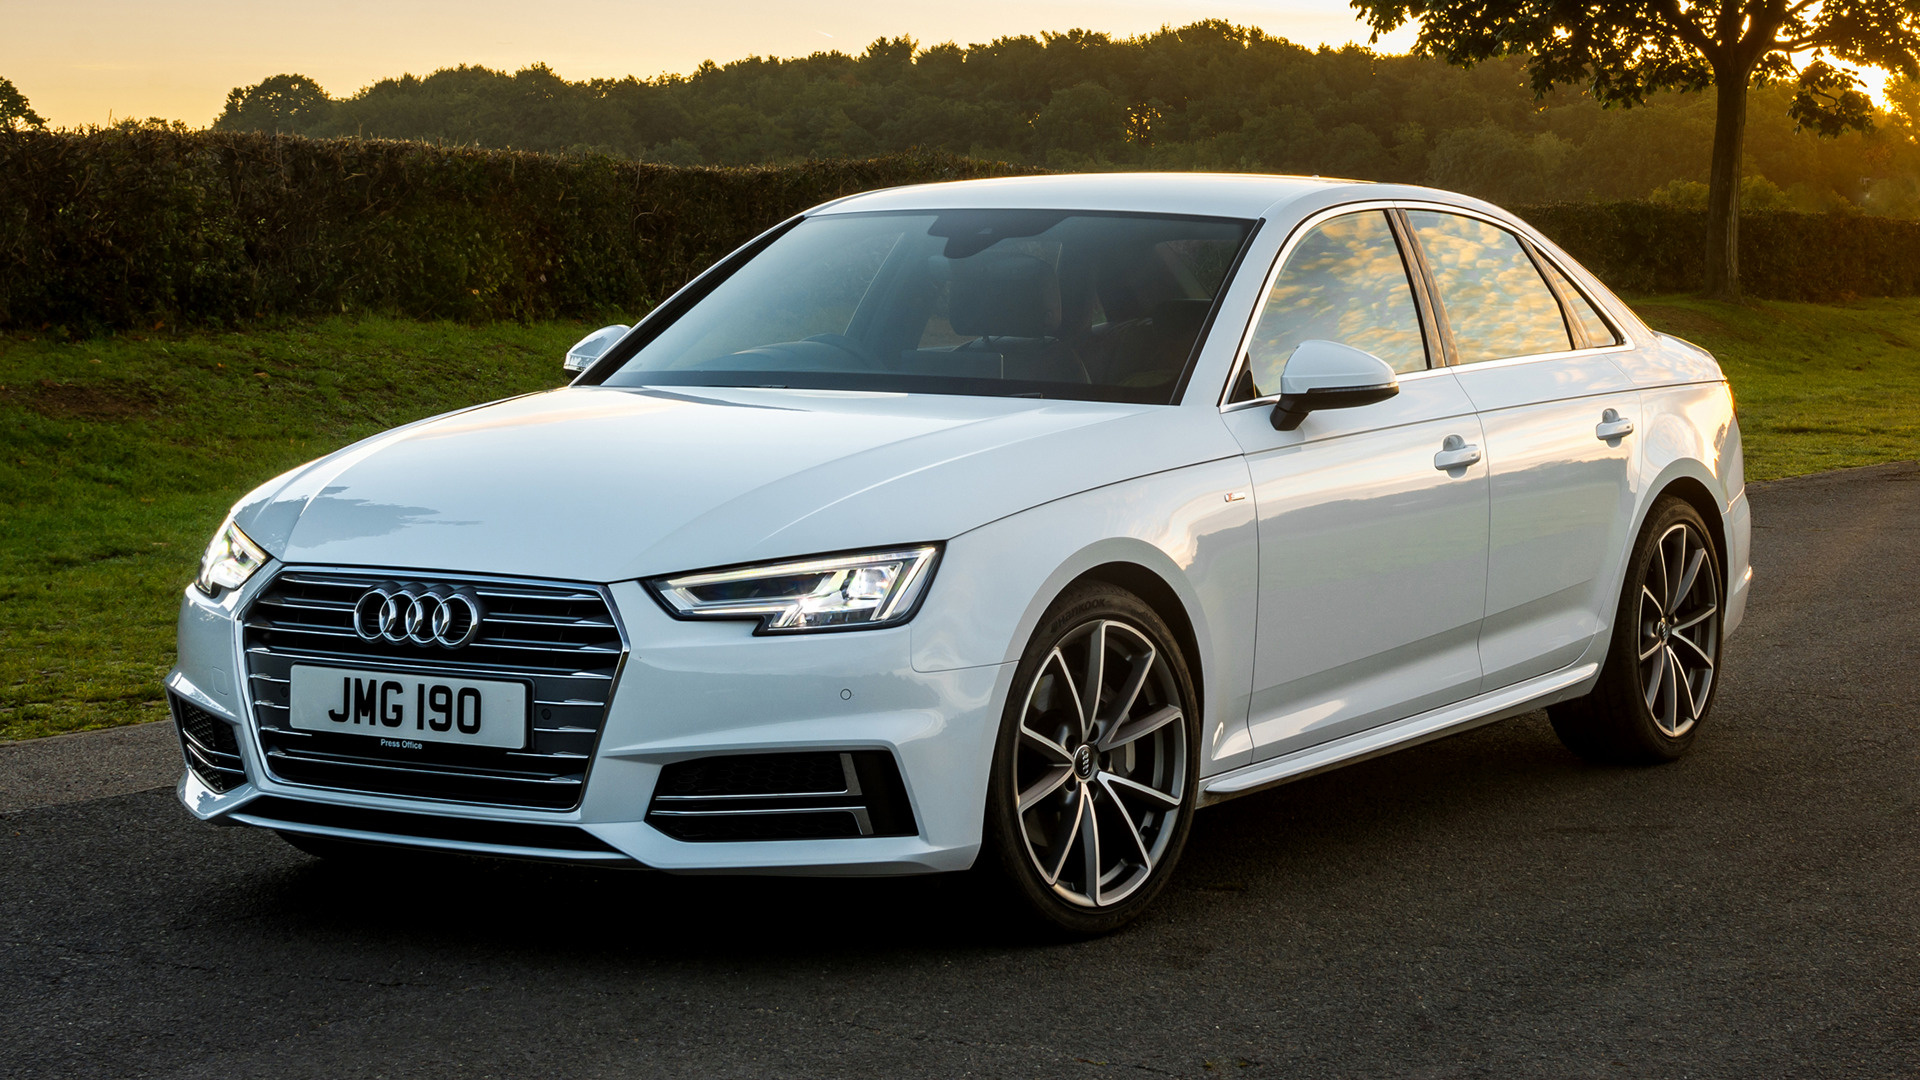 Audi A4 Saloon S line (2015) UK Wallpapers and HD Images ...